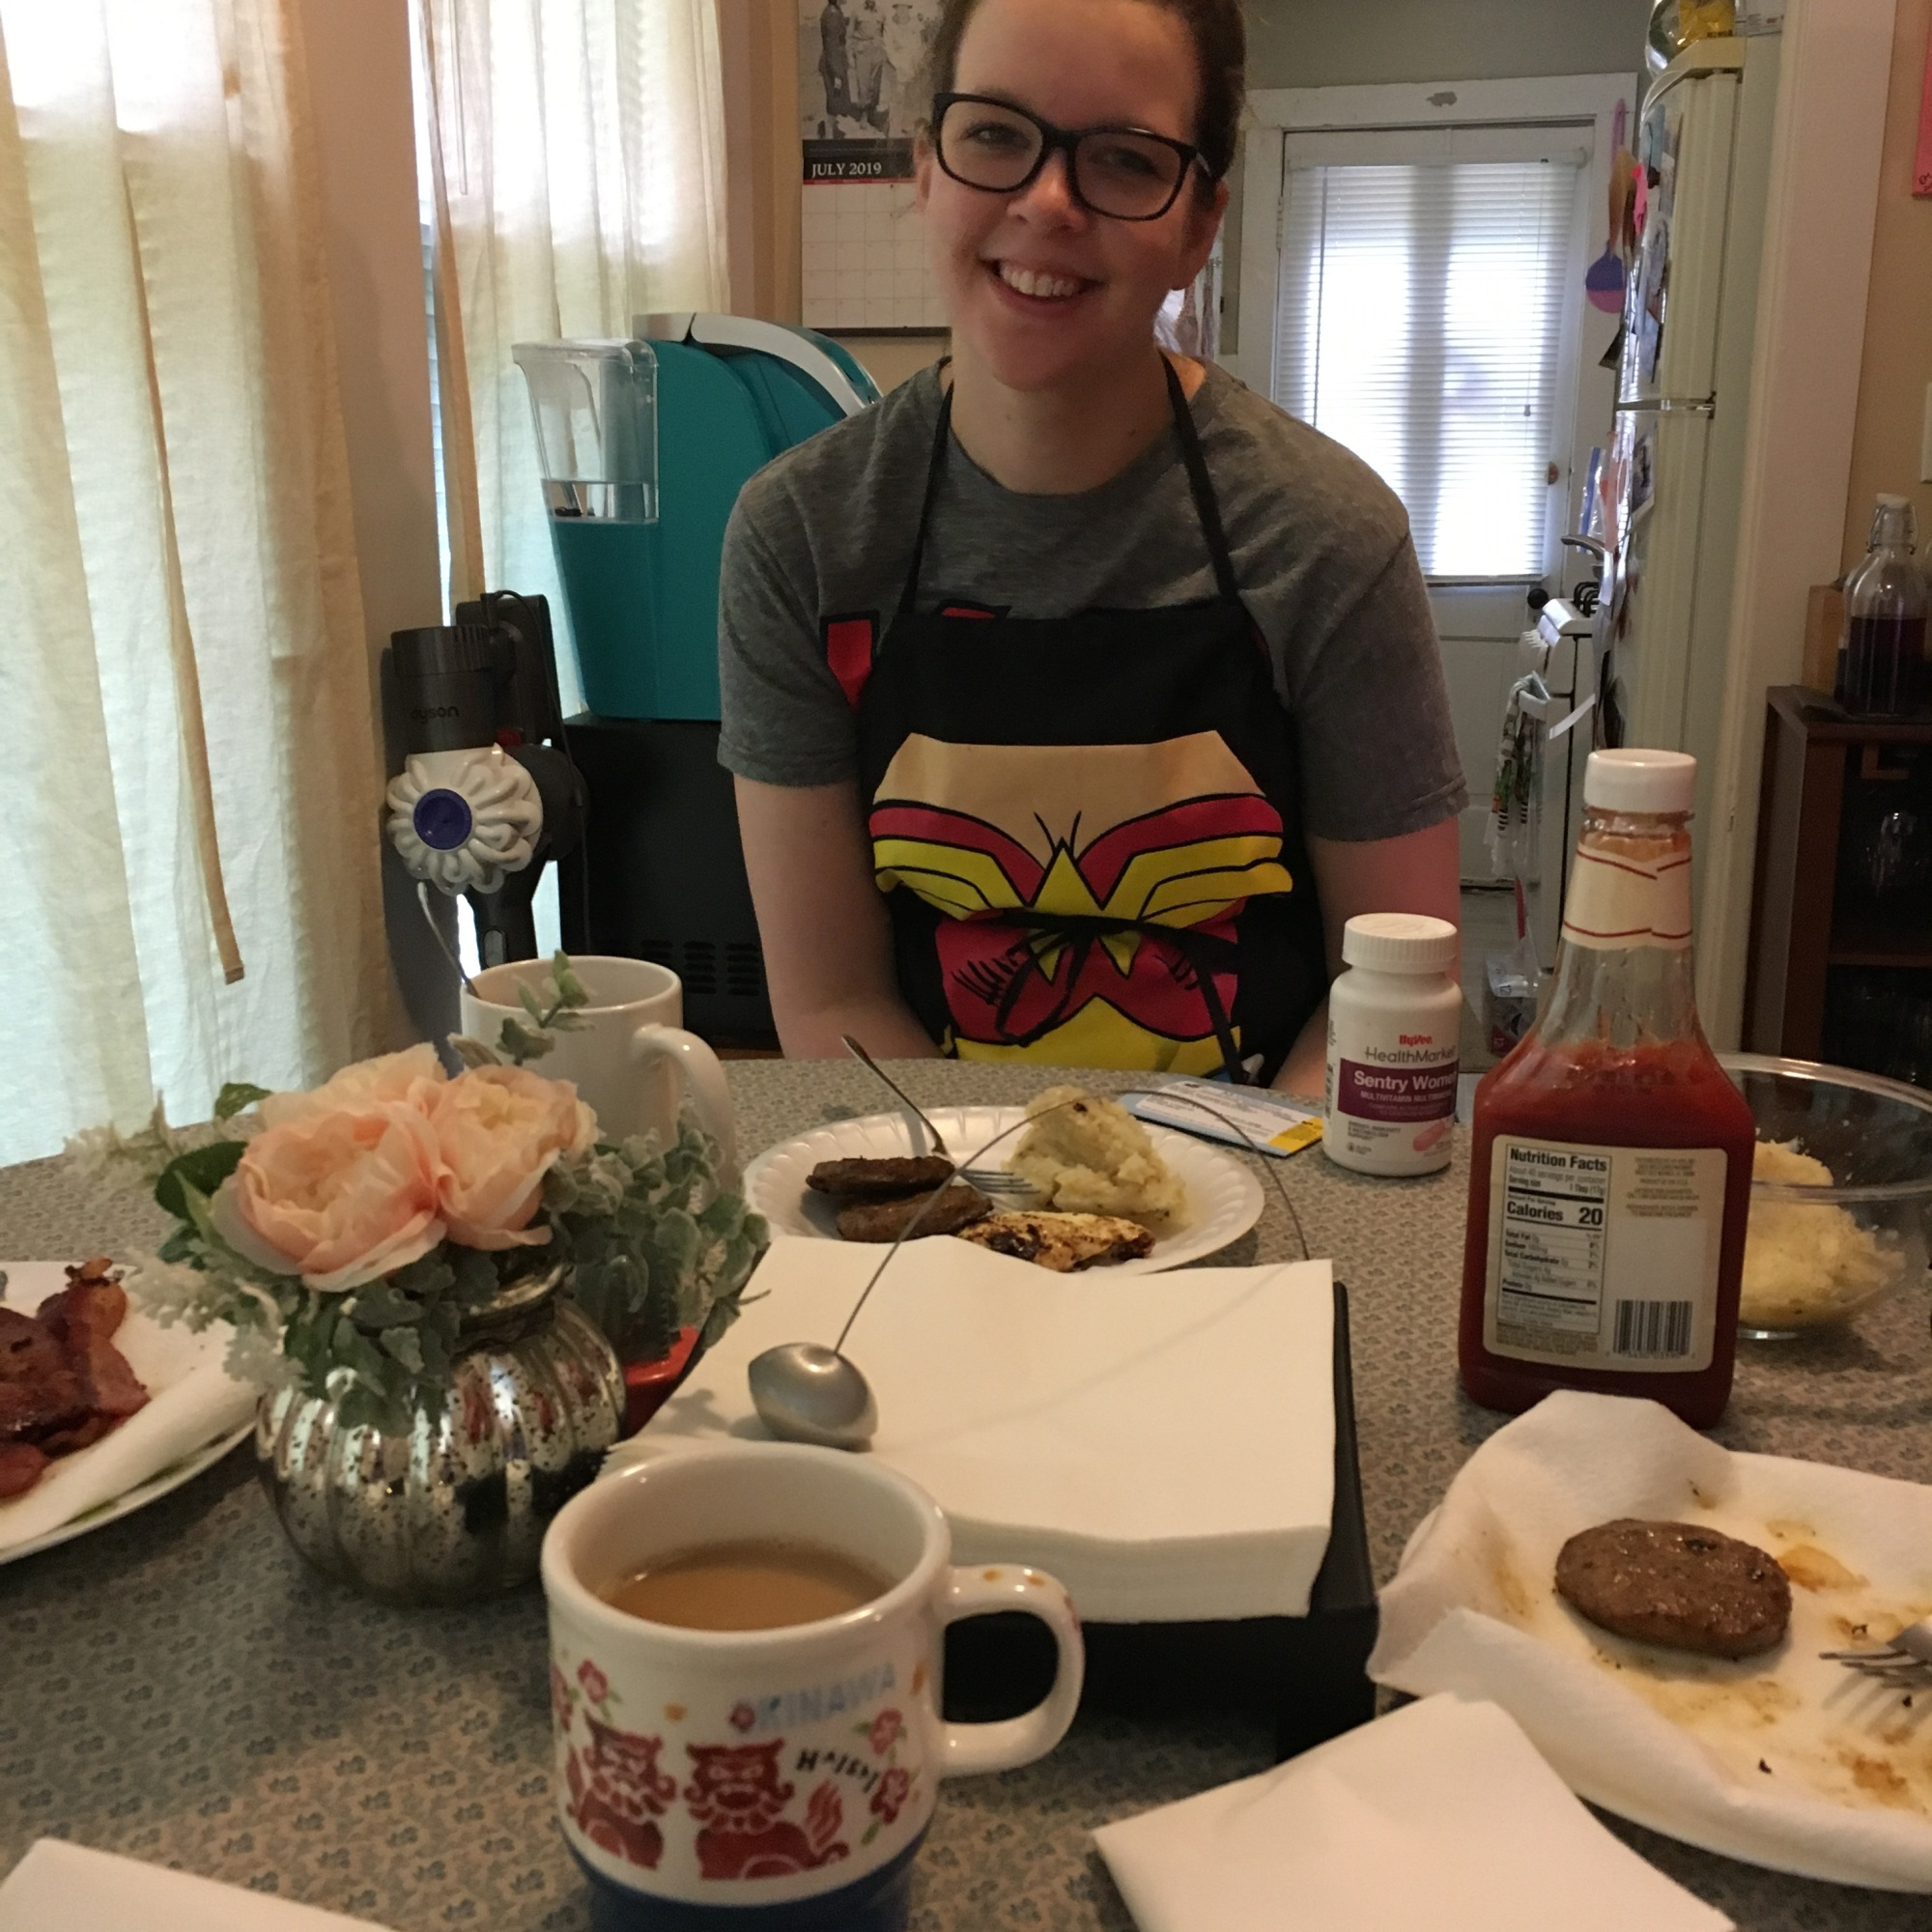 Breakfast with Wonder Woman